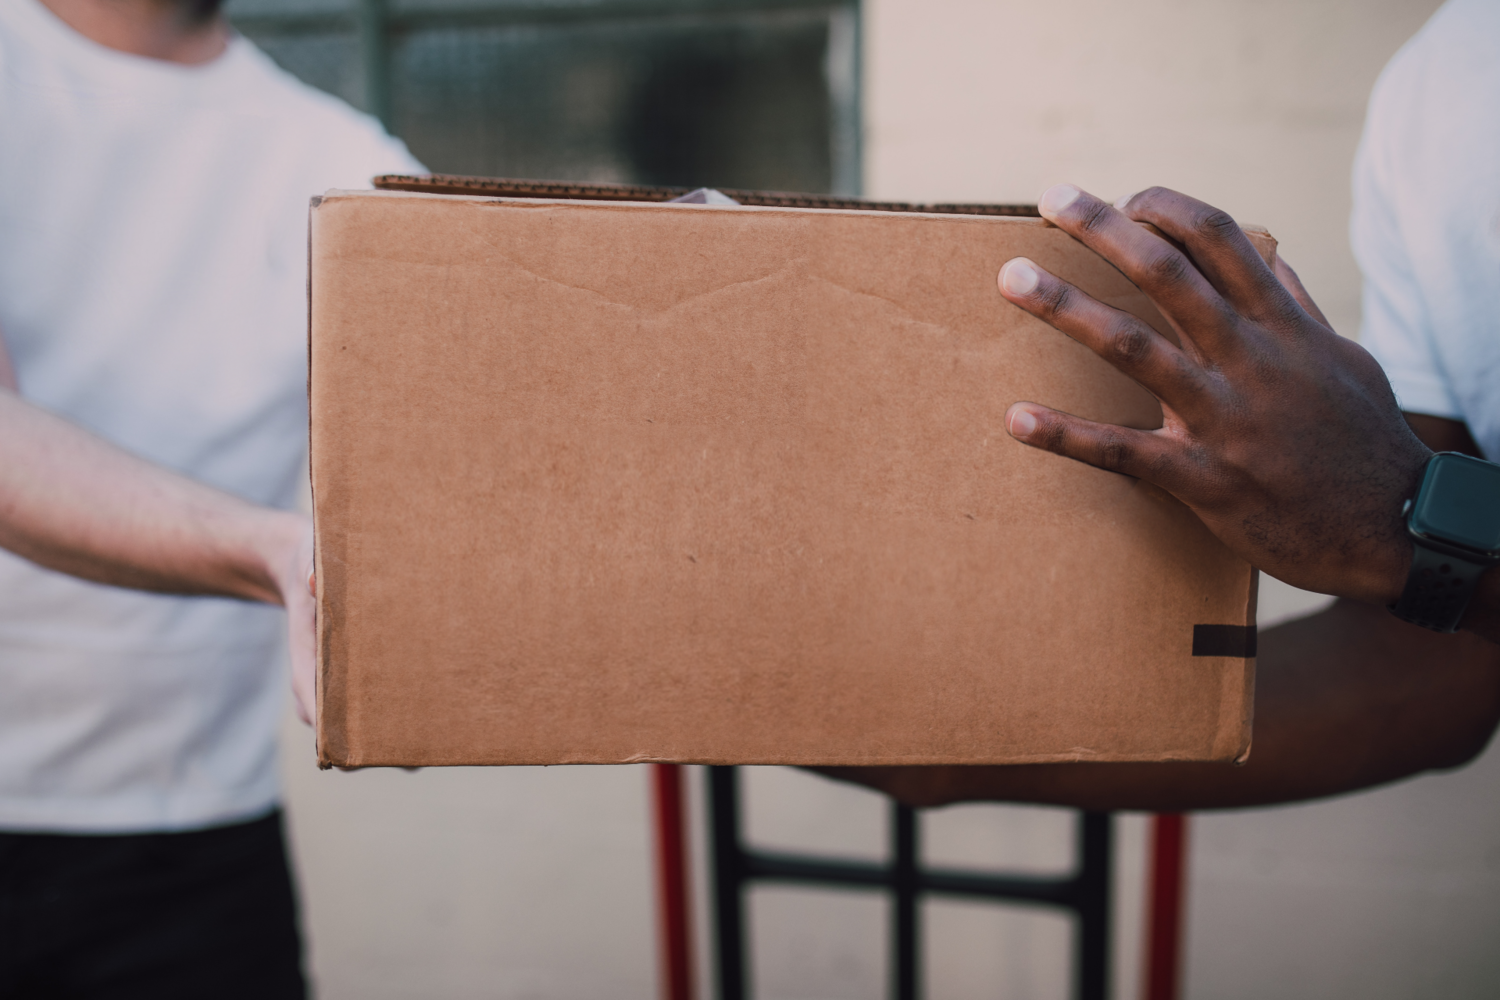 Person, Package Delivery, Cardboard, Carton, Box, Finger